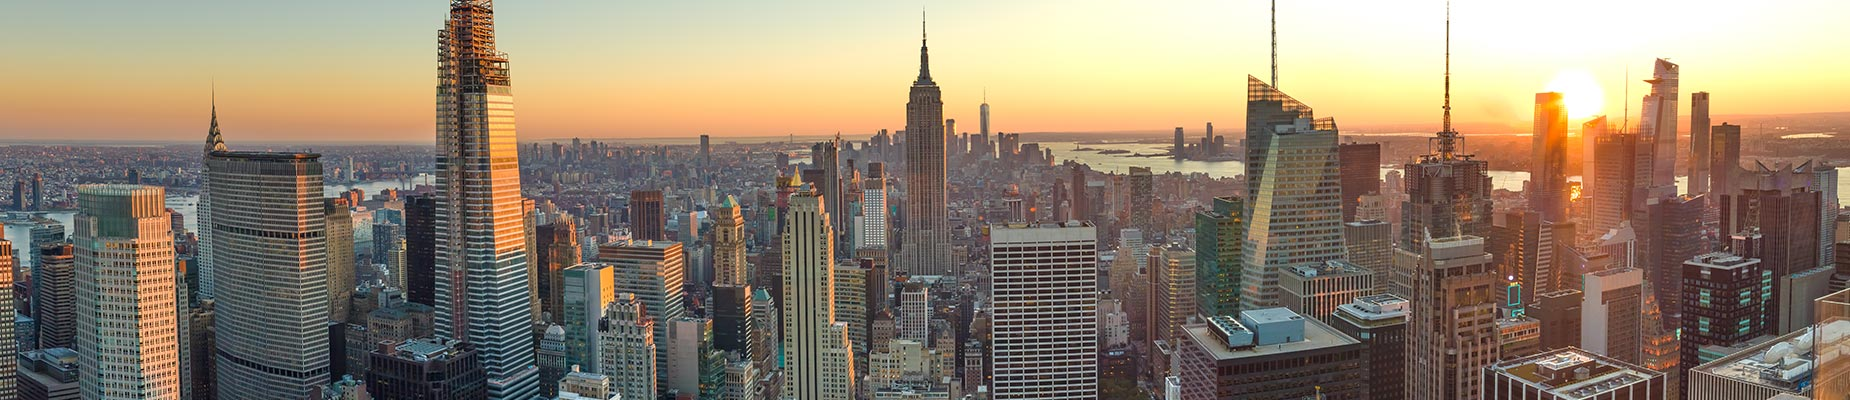 New York, NY Human Resources Consulting and Outsourcing